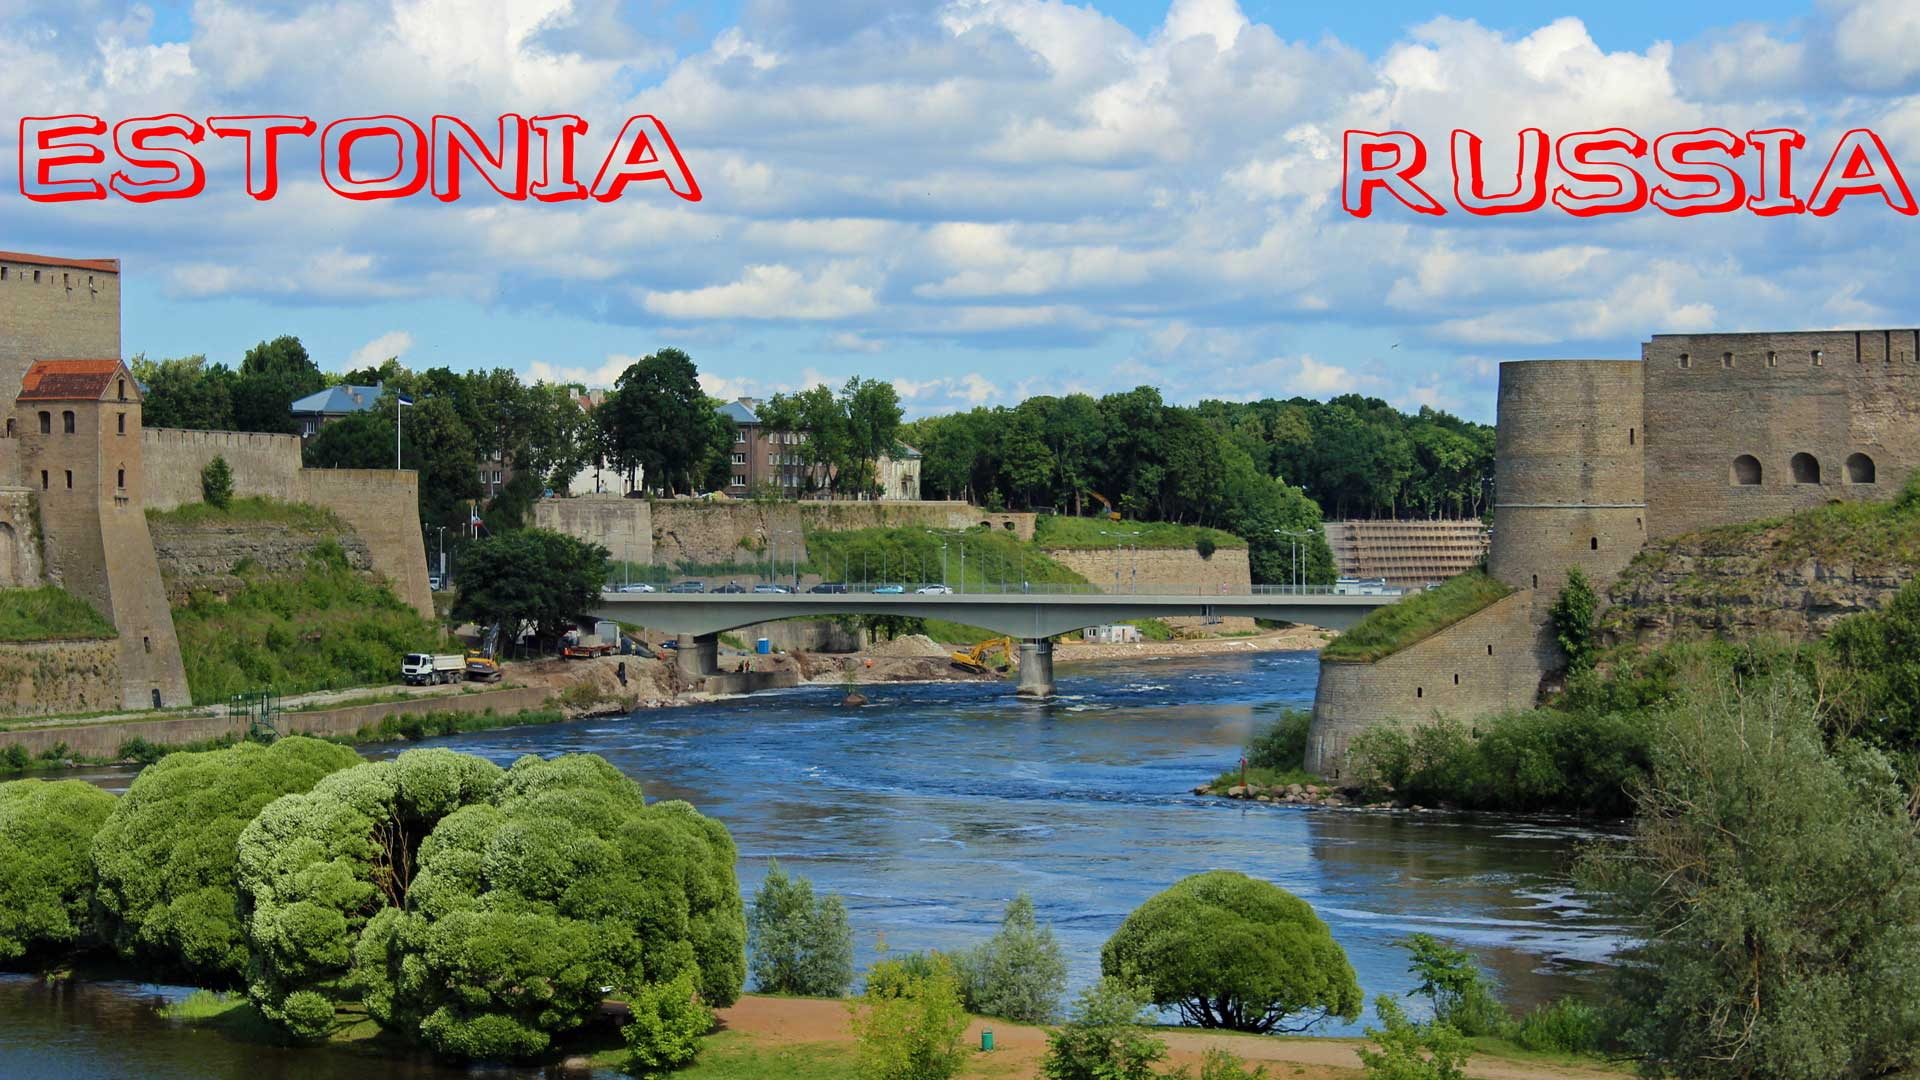 estonia-russia-side-by-side